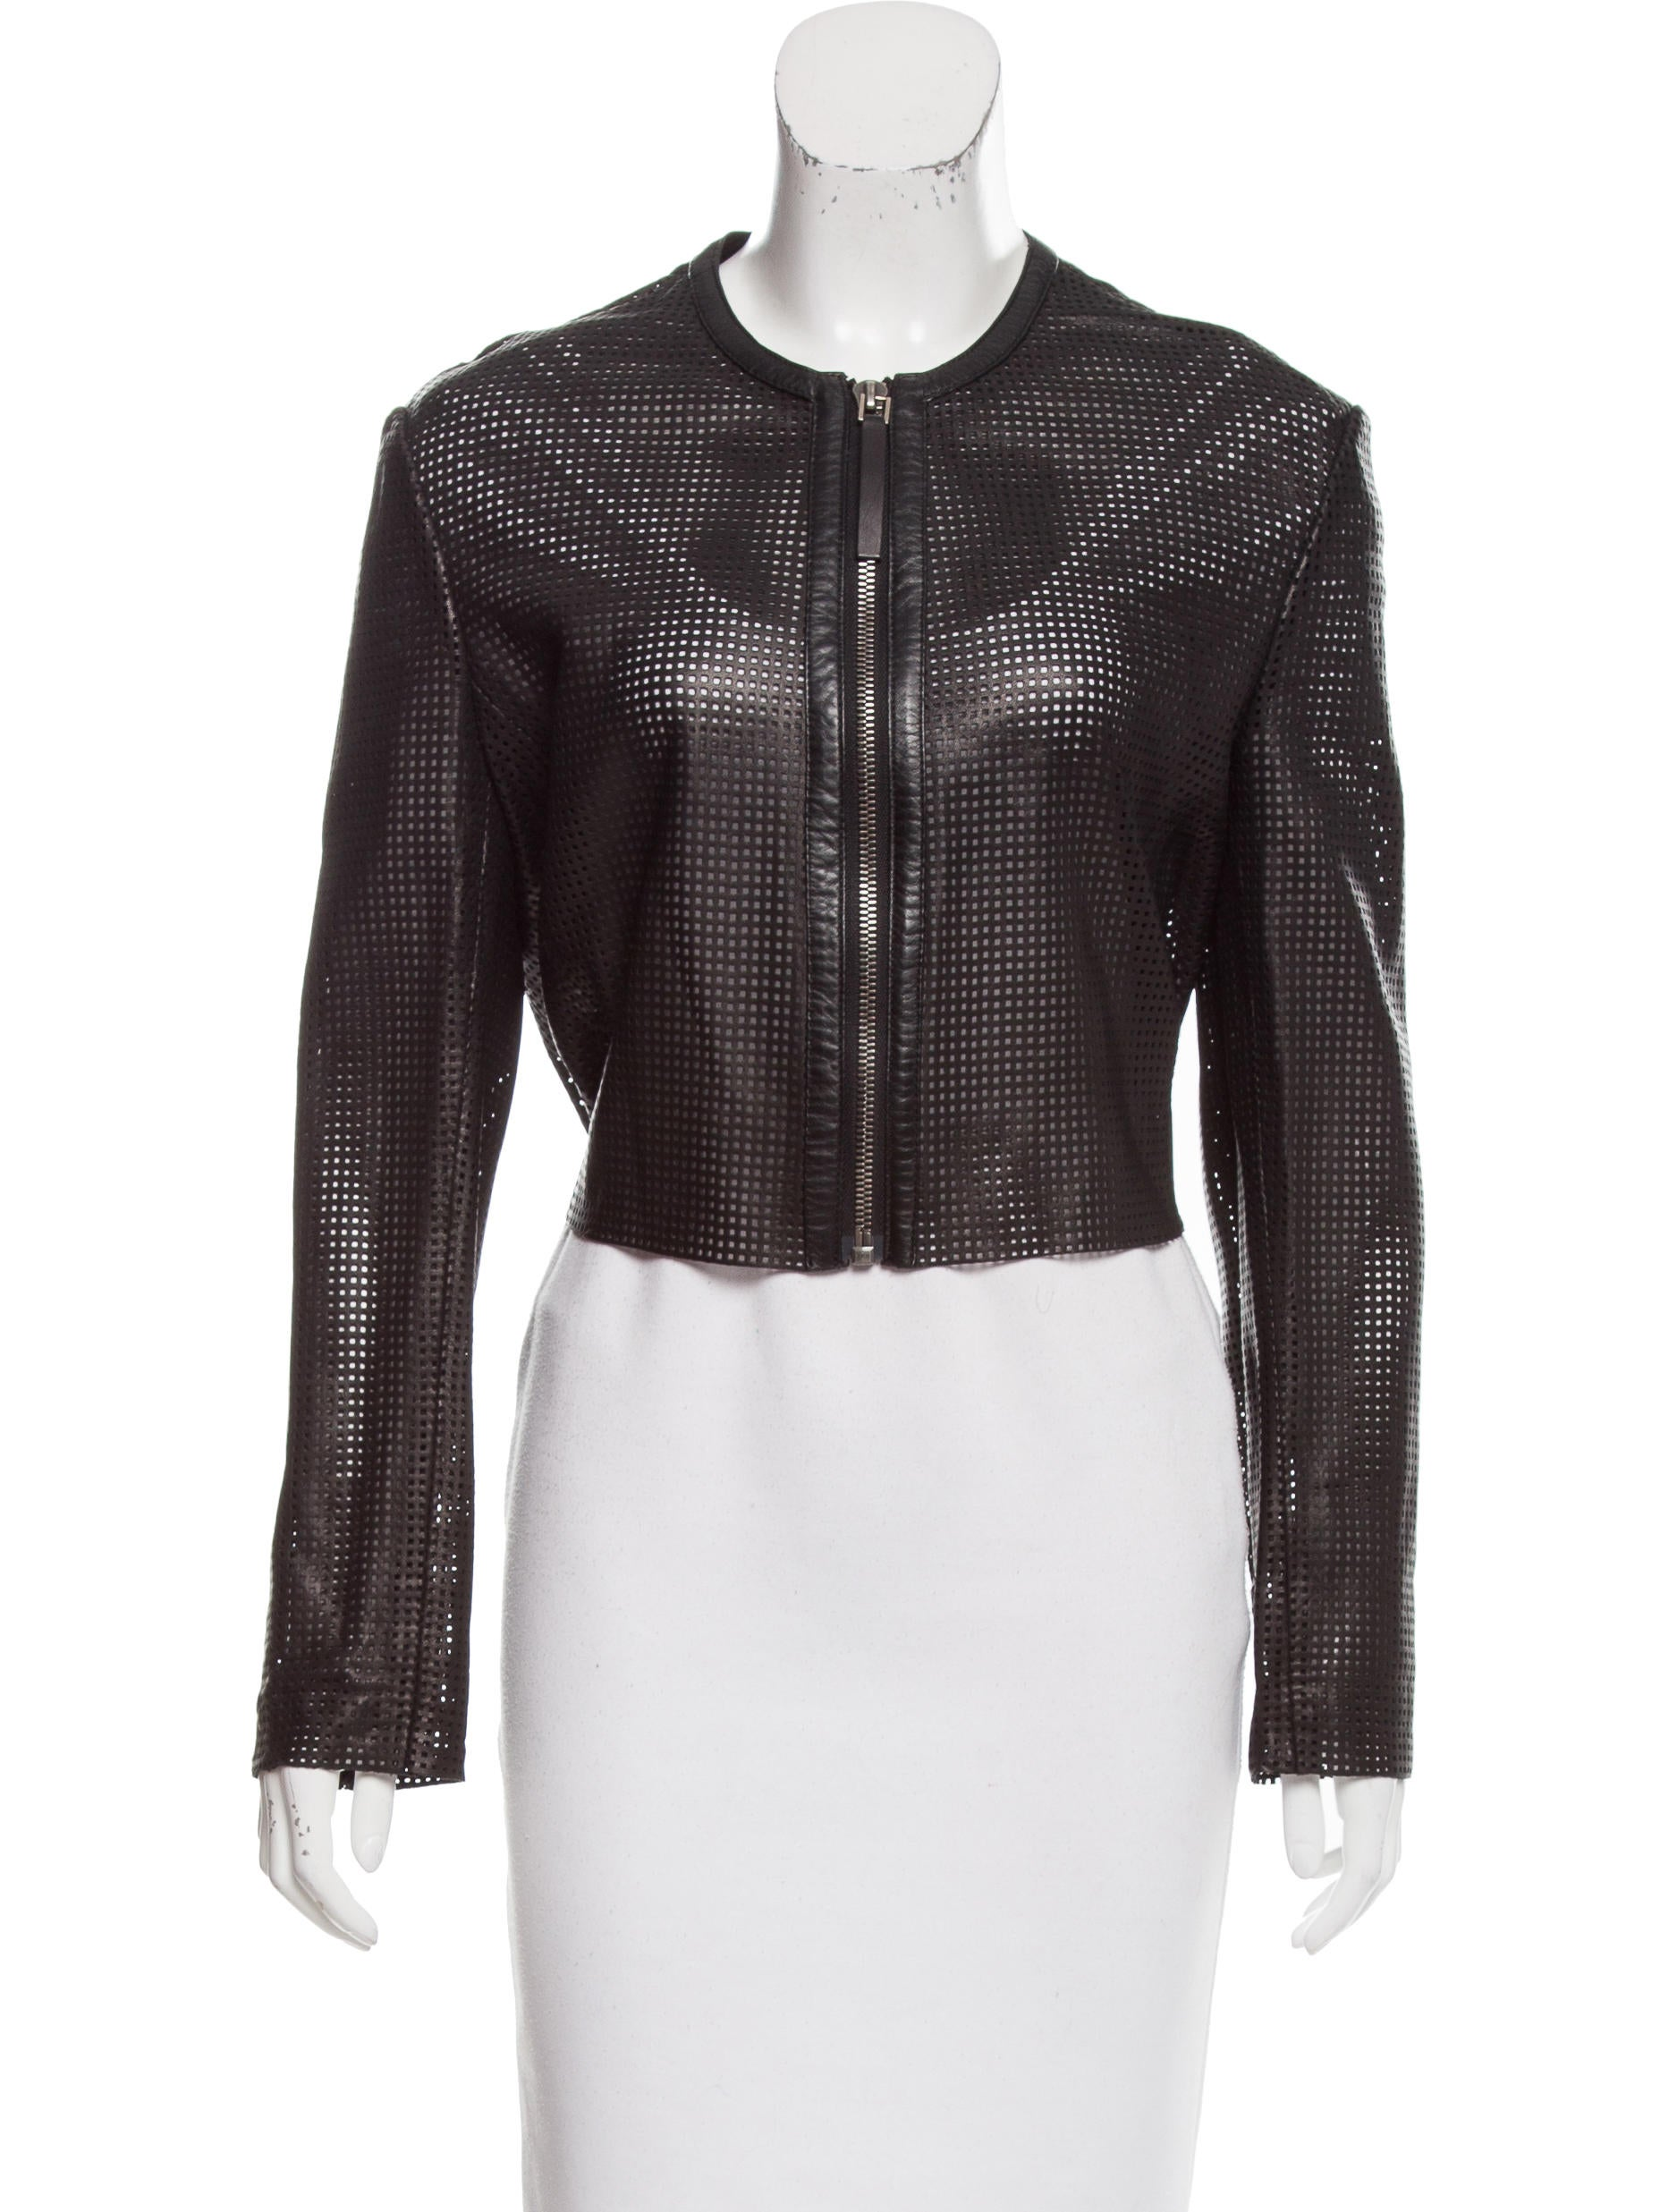 Helmut lang cropped leather jacket